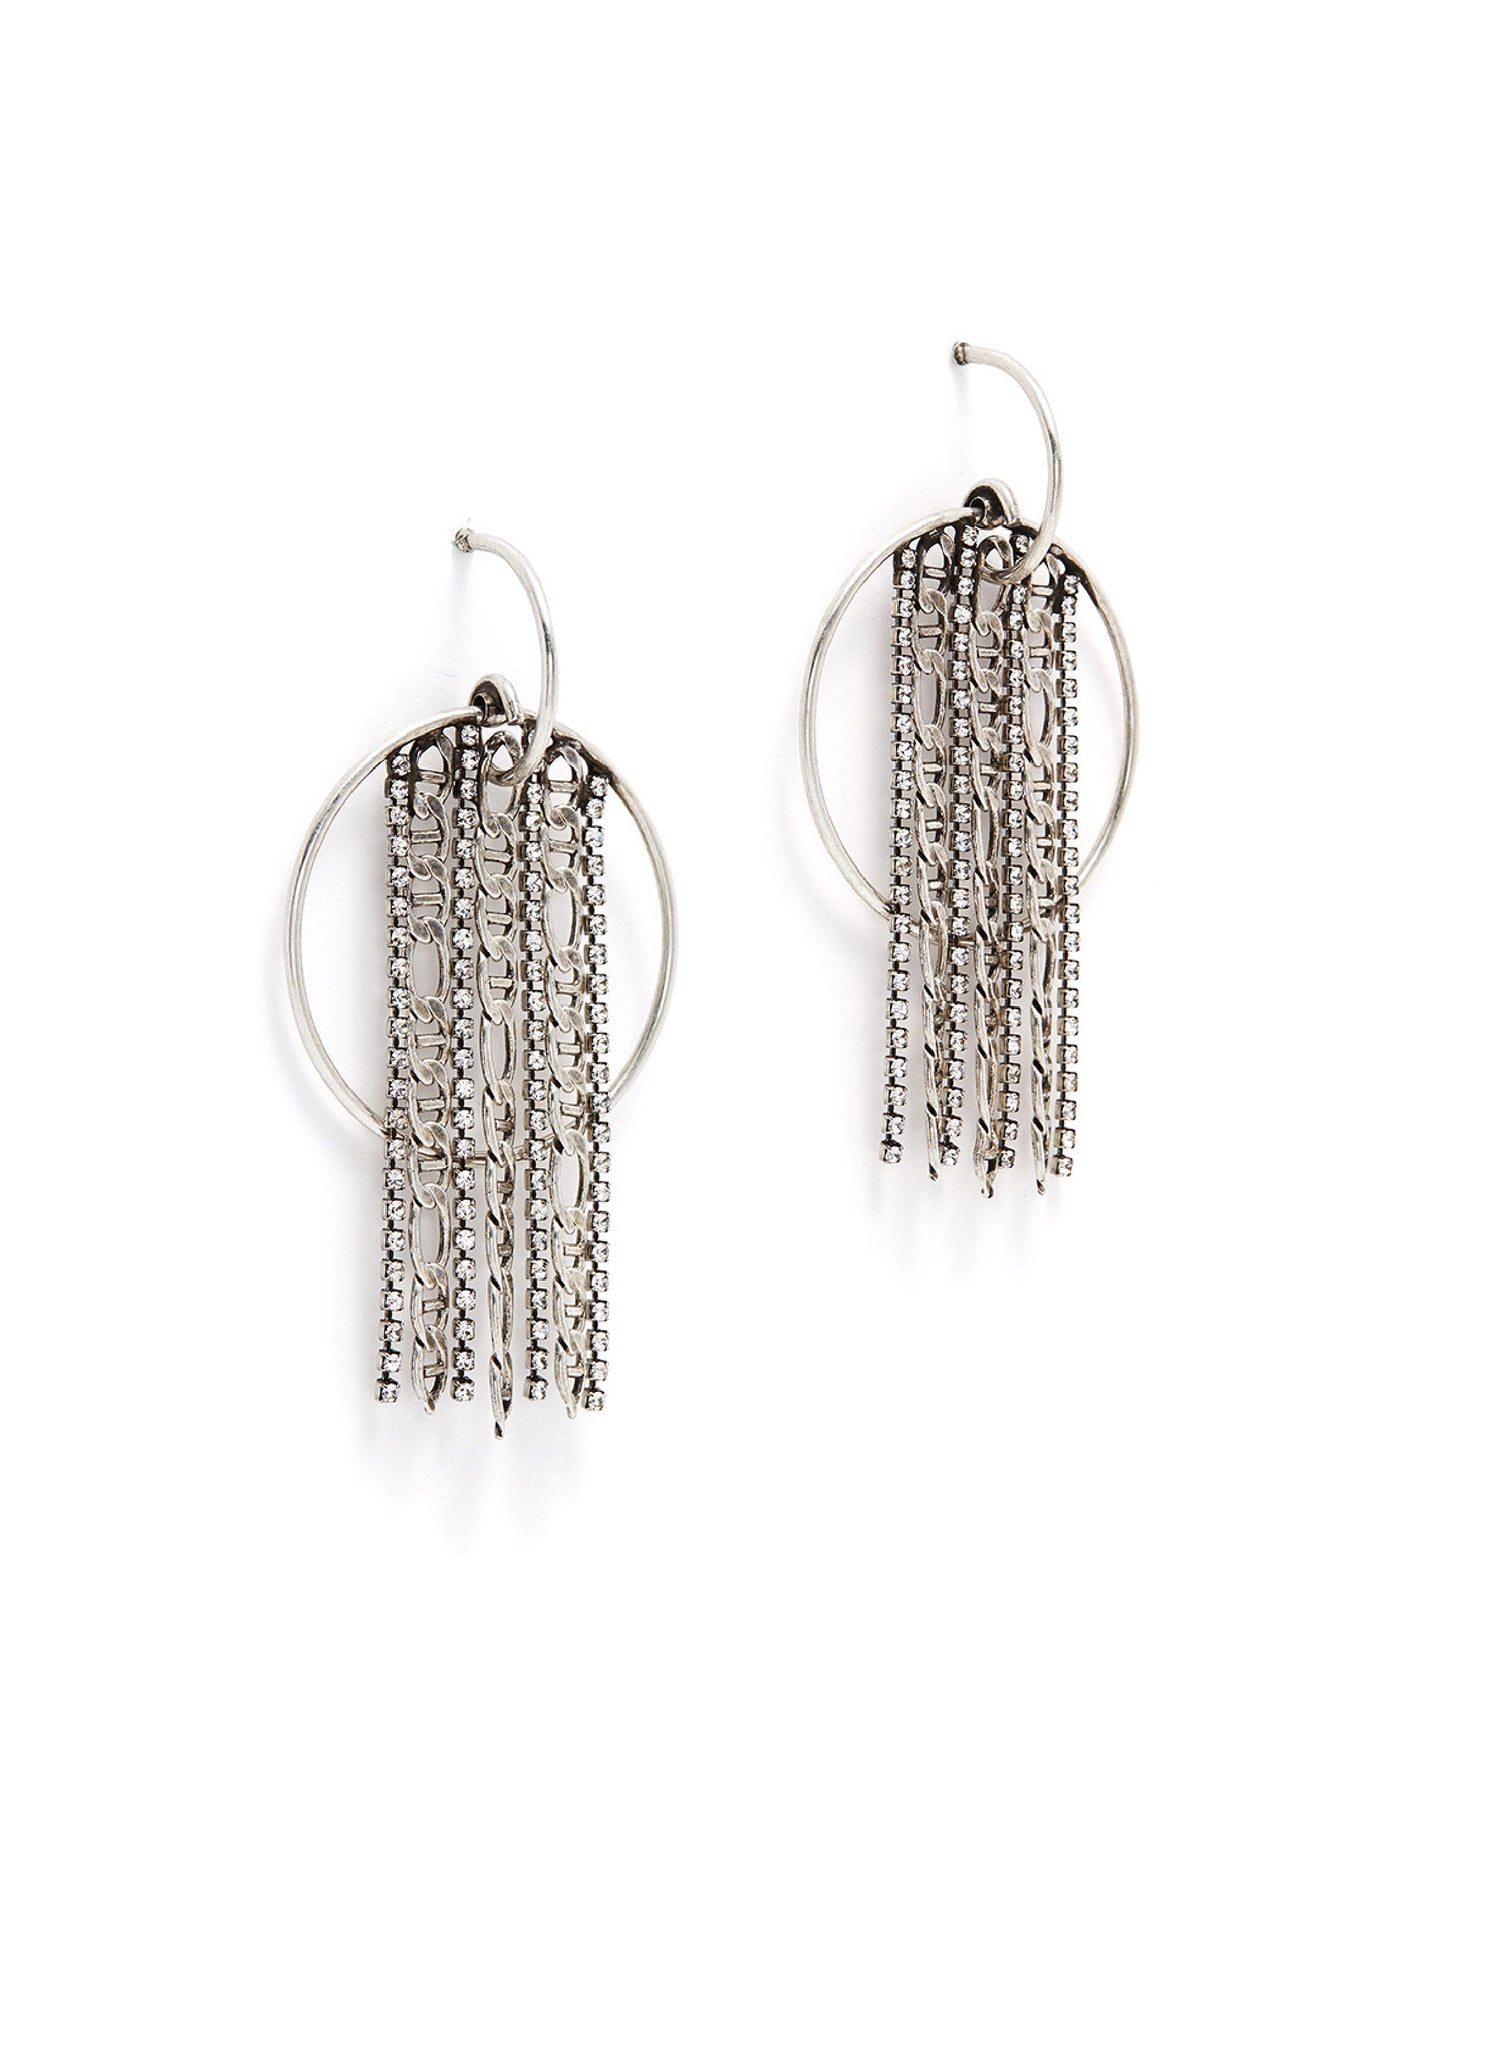 Bruni Earrings